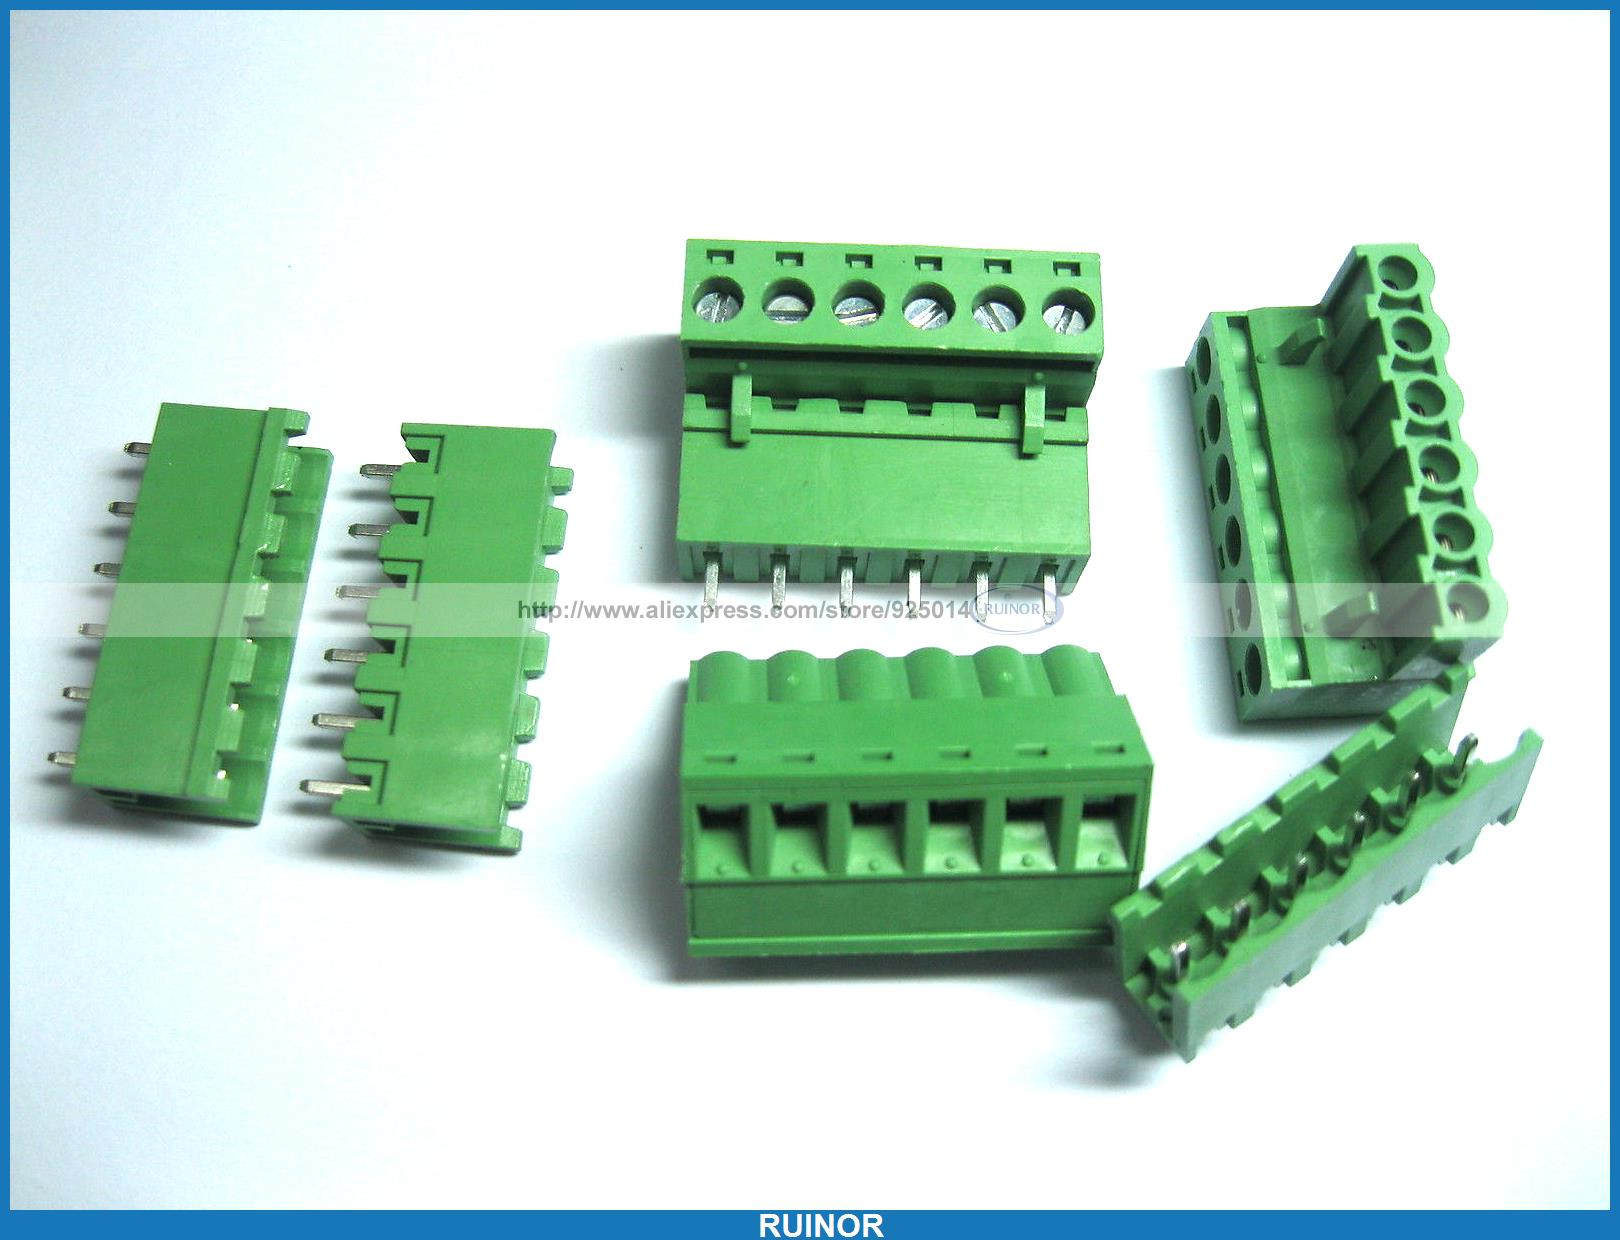 100 Pcs Green 6 Pin 5 08mm Screw Terminal Block Connector Pluggable Type 1825242[pluggable terminal blocks 14 pos 5 08mm pitch thru h mr li